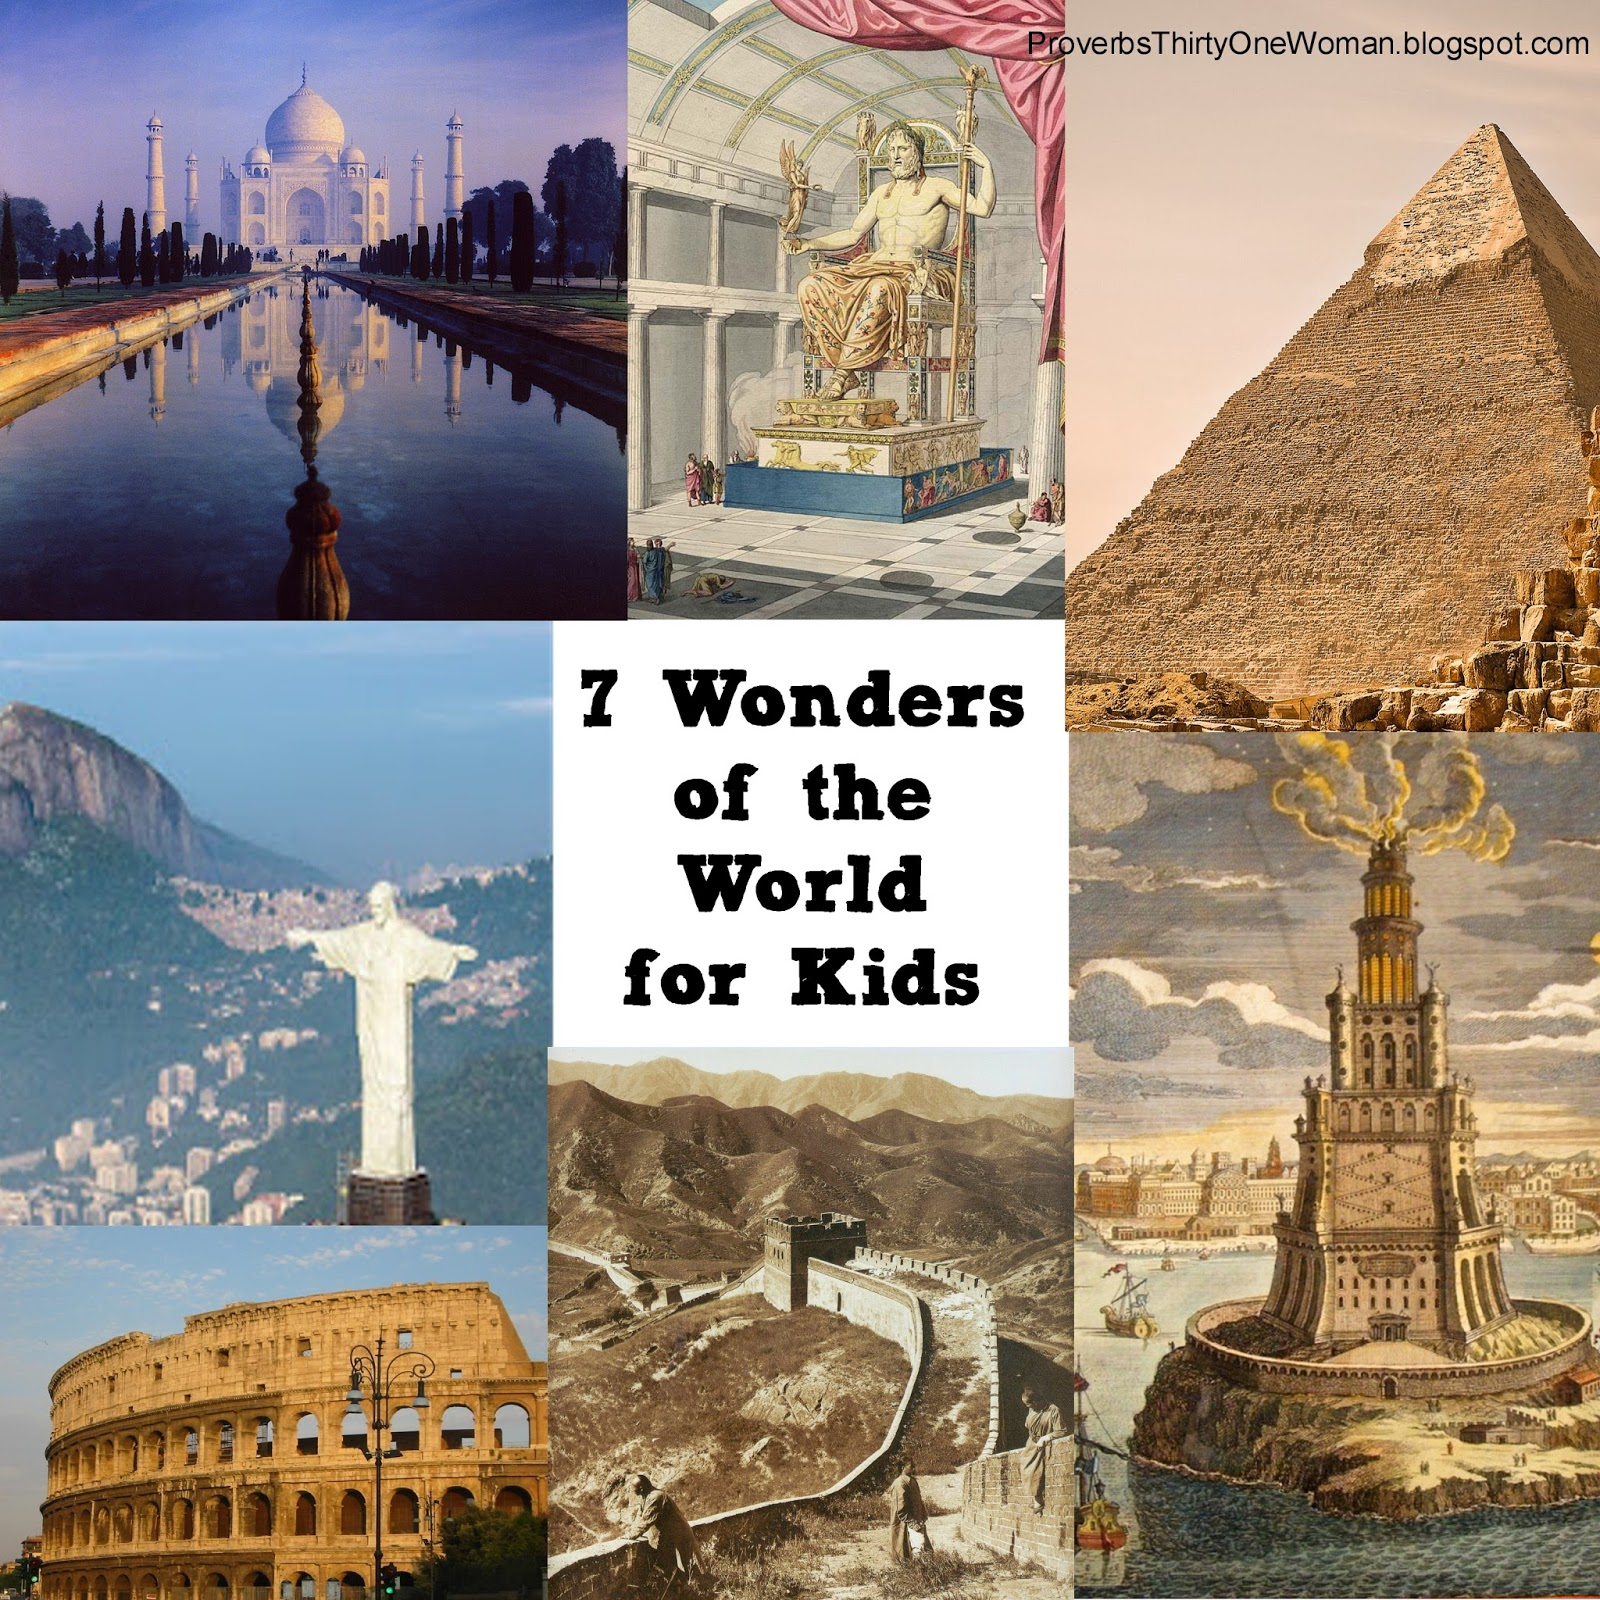 7 Wonders of the World: A Homeschool or School Break ...